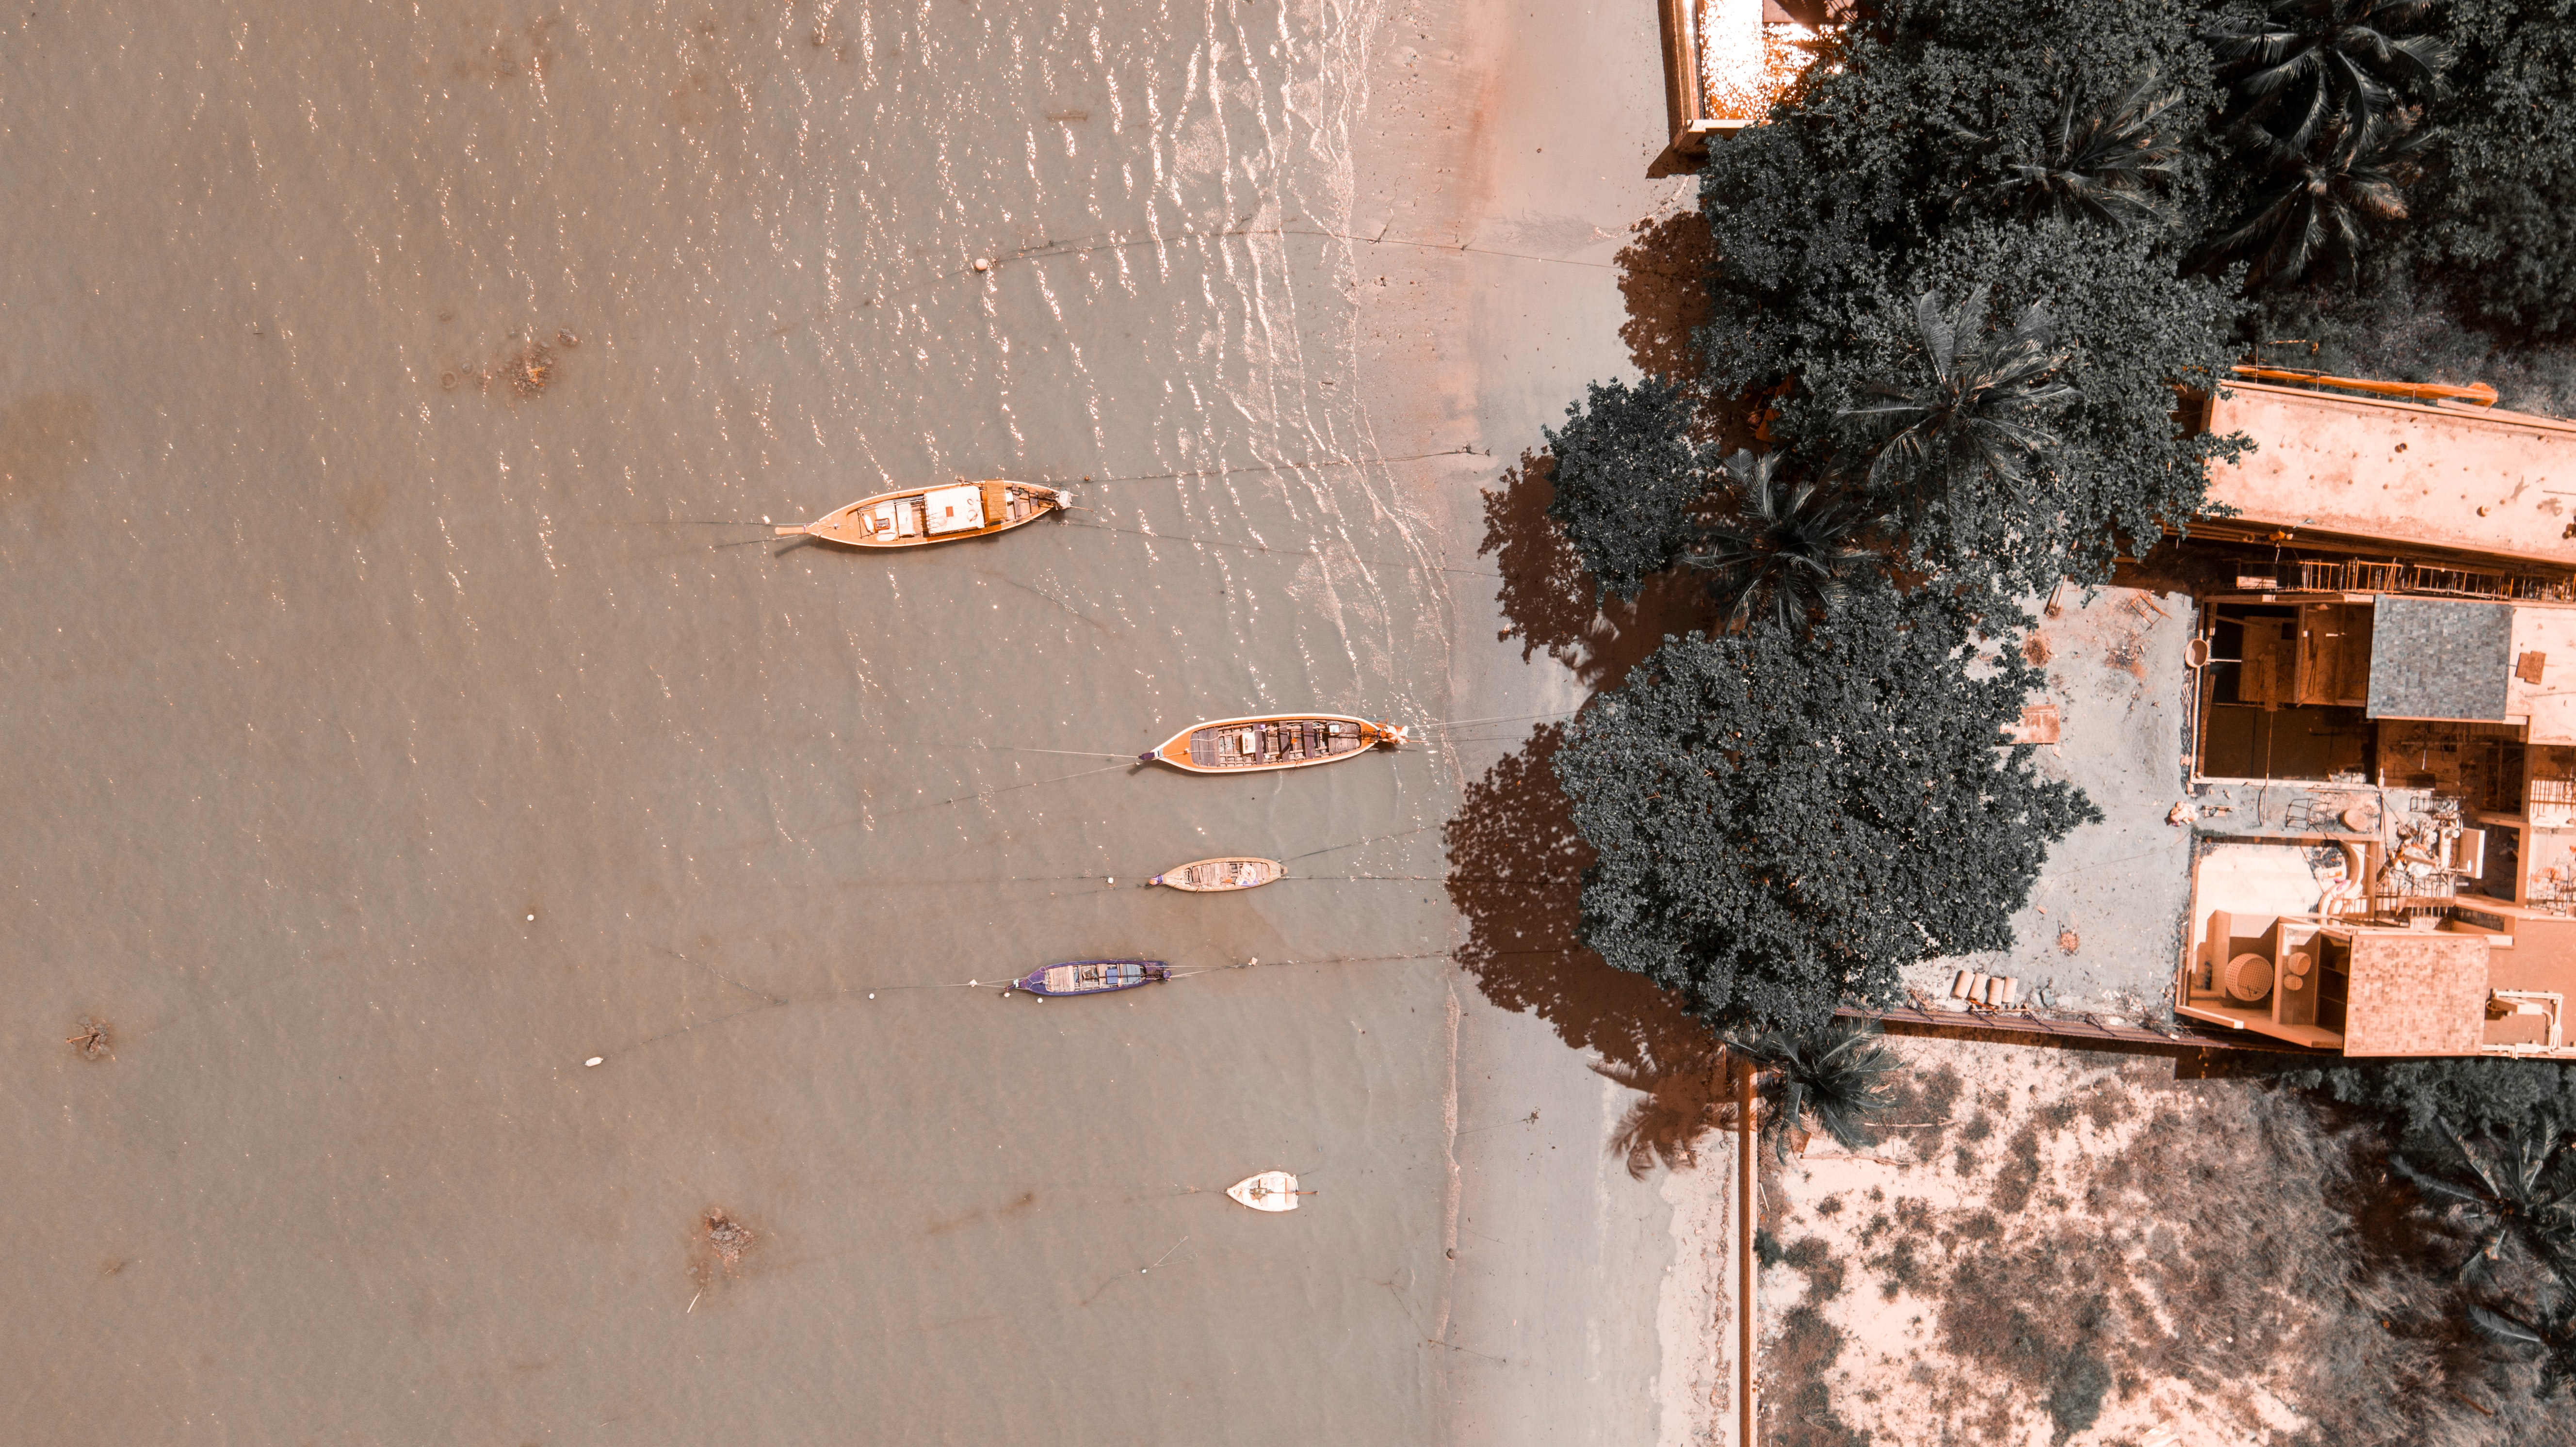 aerial photography of canoe on body of water beside trees and houses during daytime